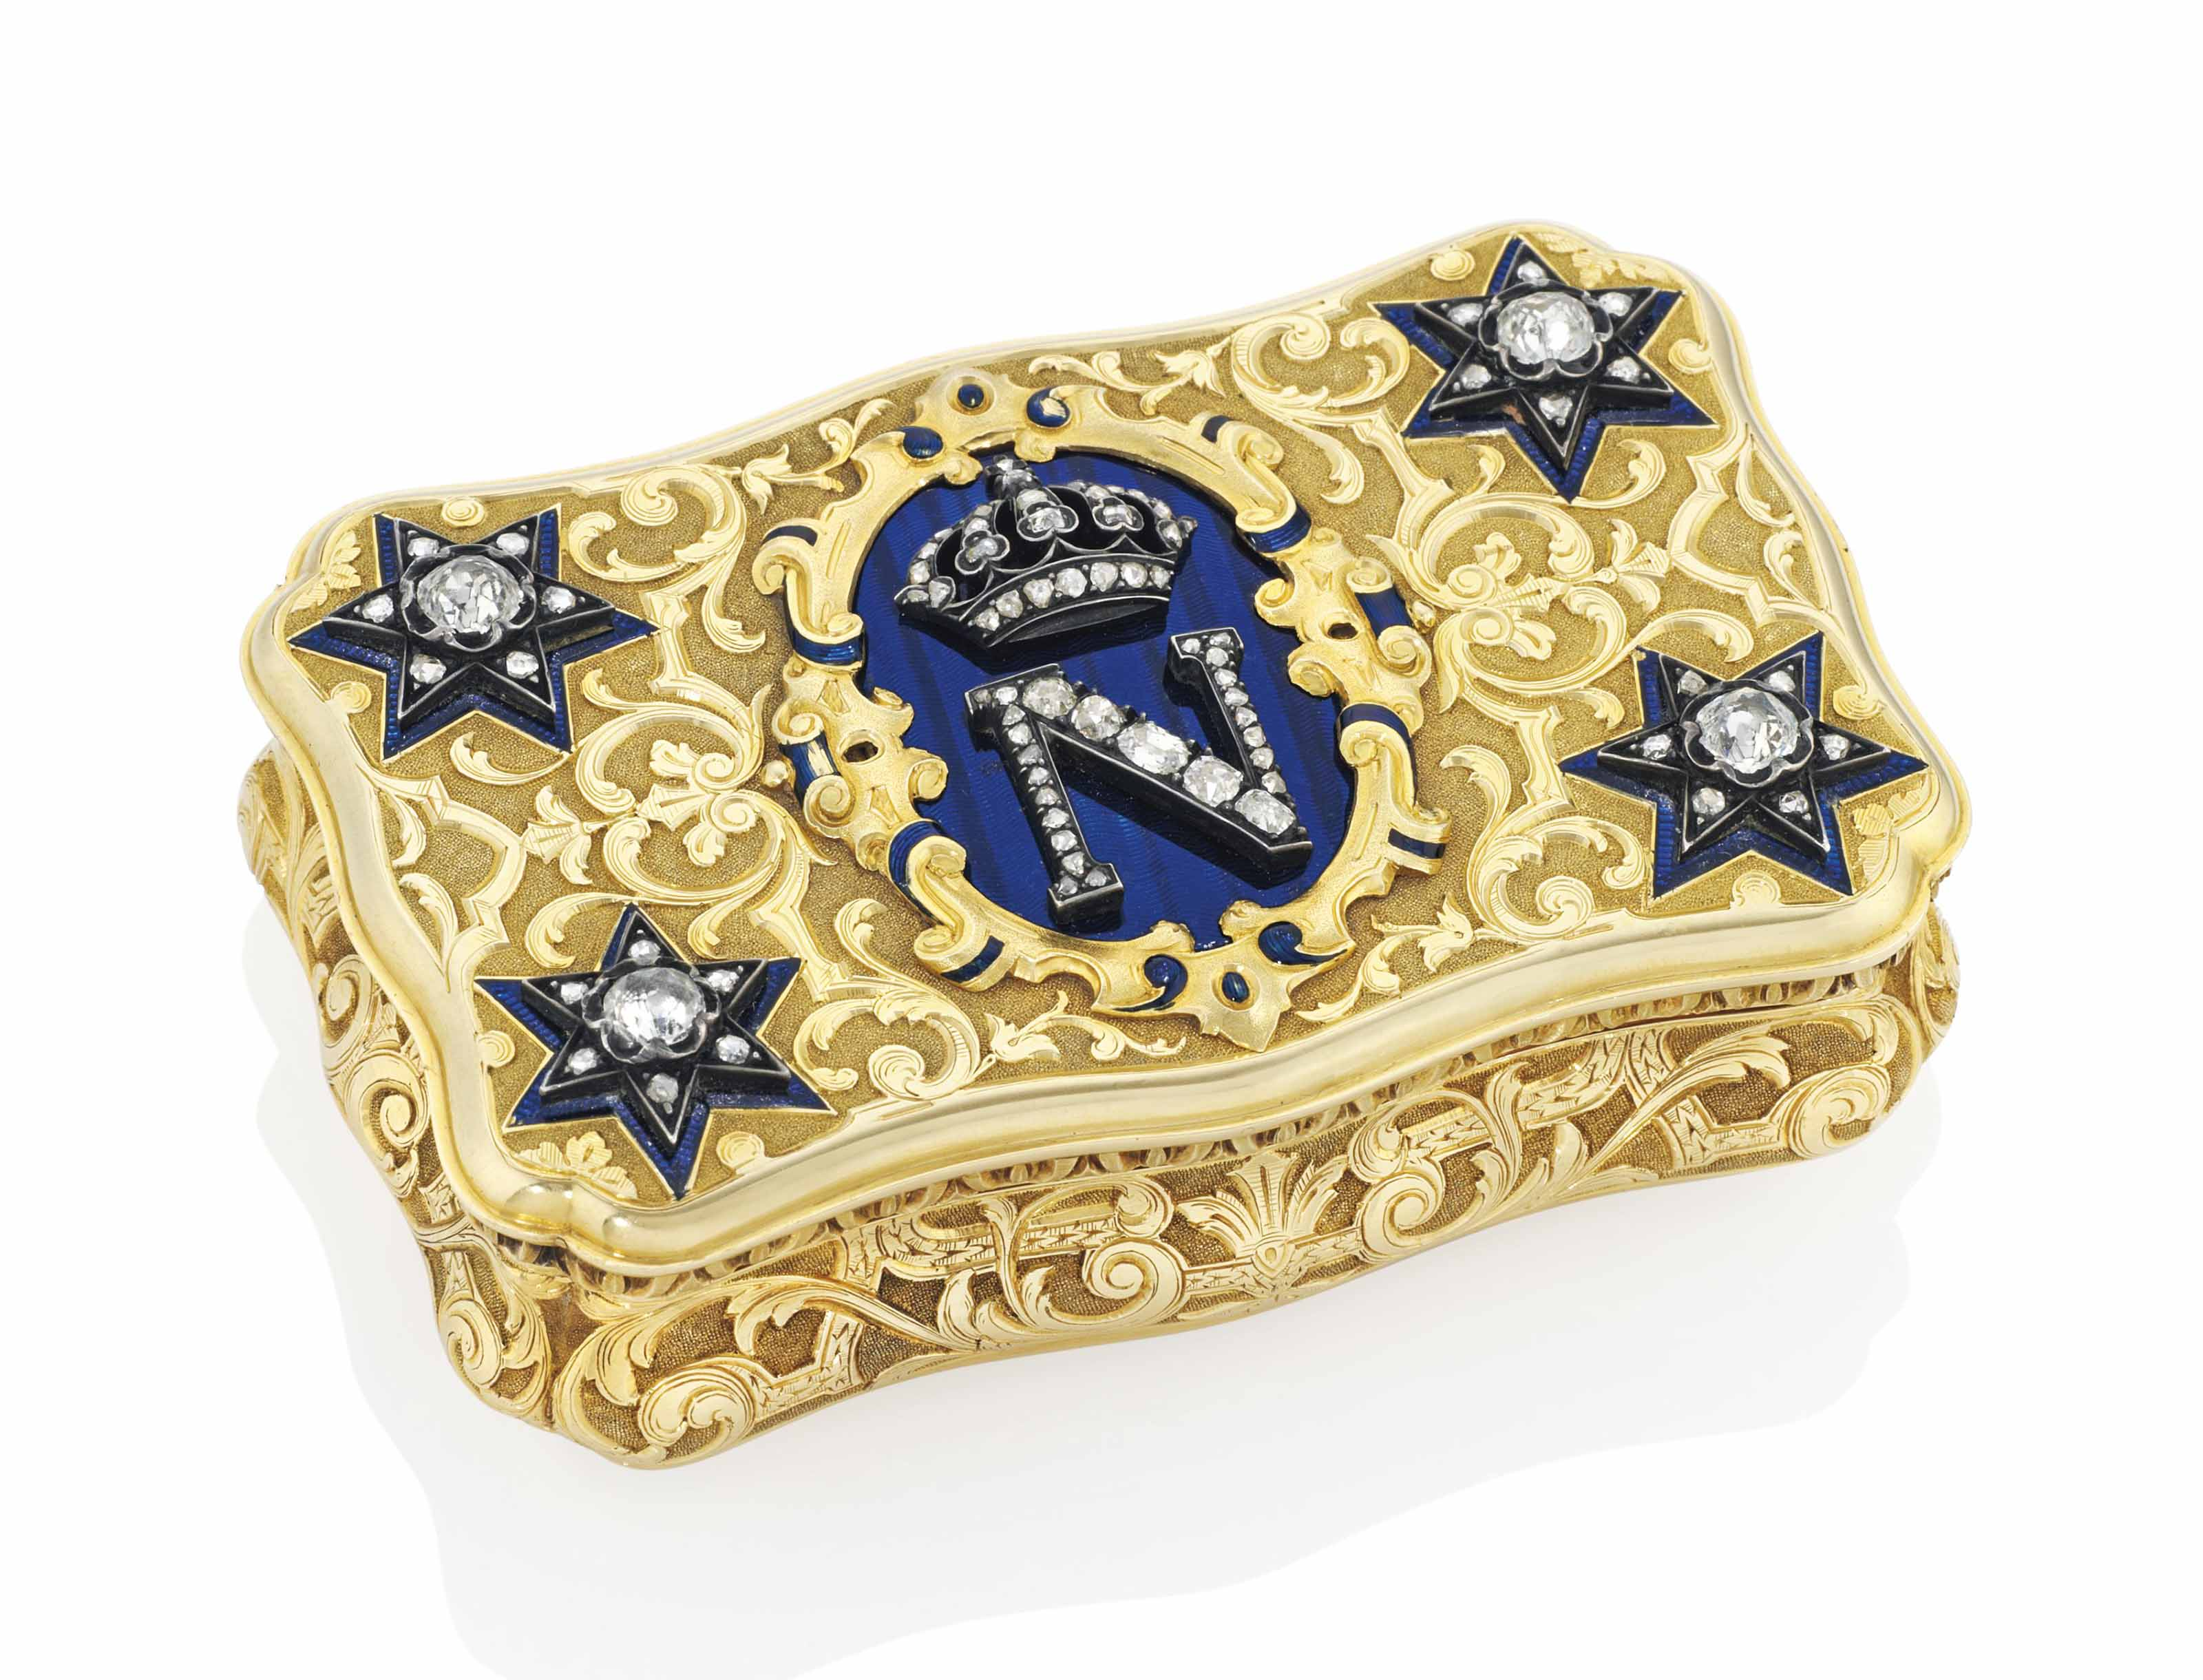 A FRENCH IMPERIAL JEWELLED ENAMELLED GOLD PRESENTATION SNUFF...